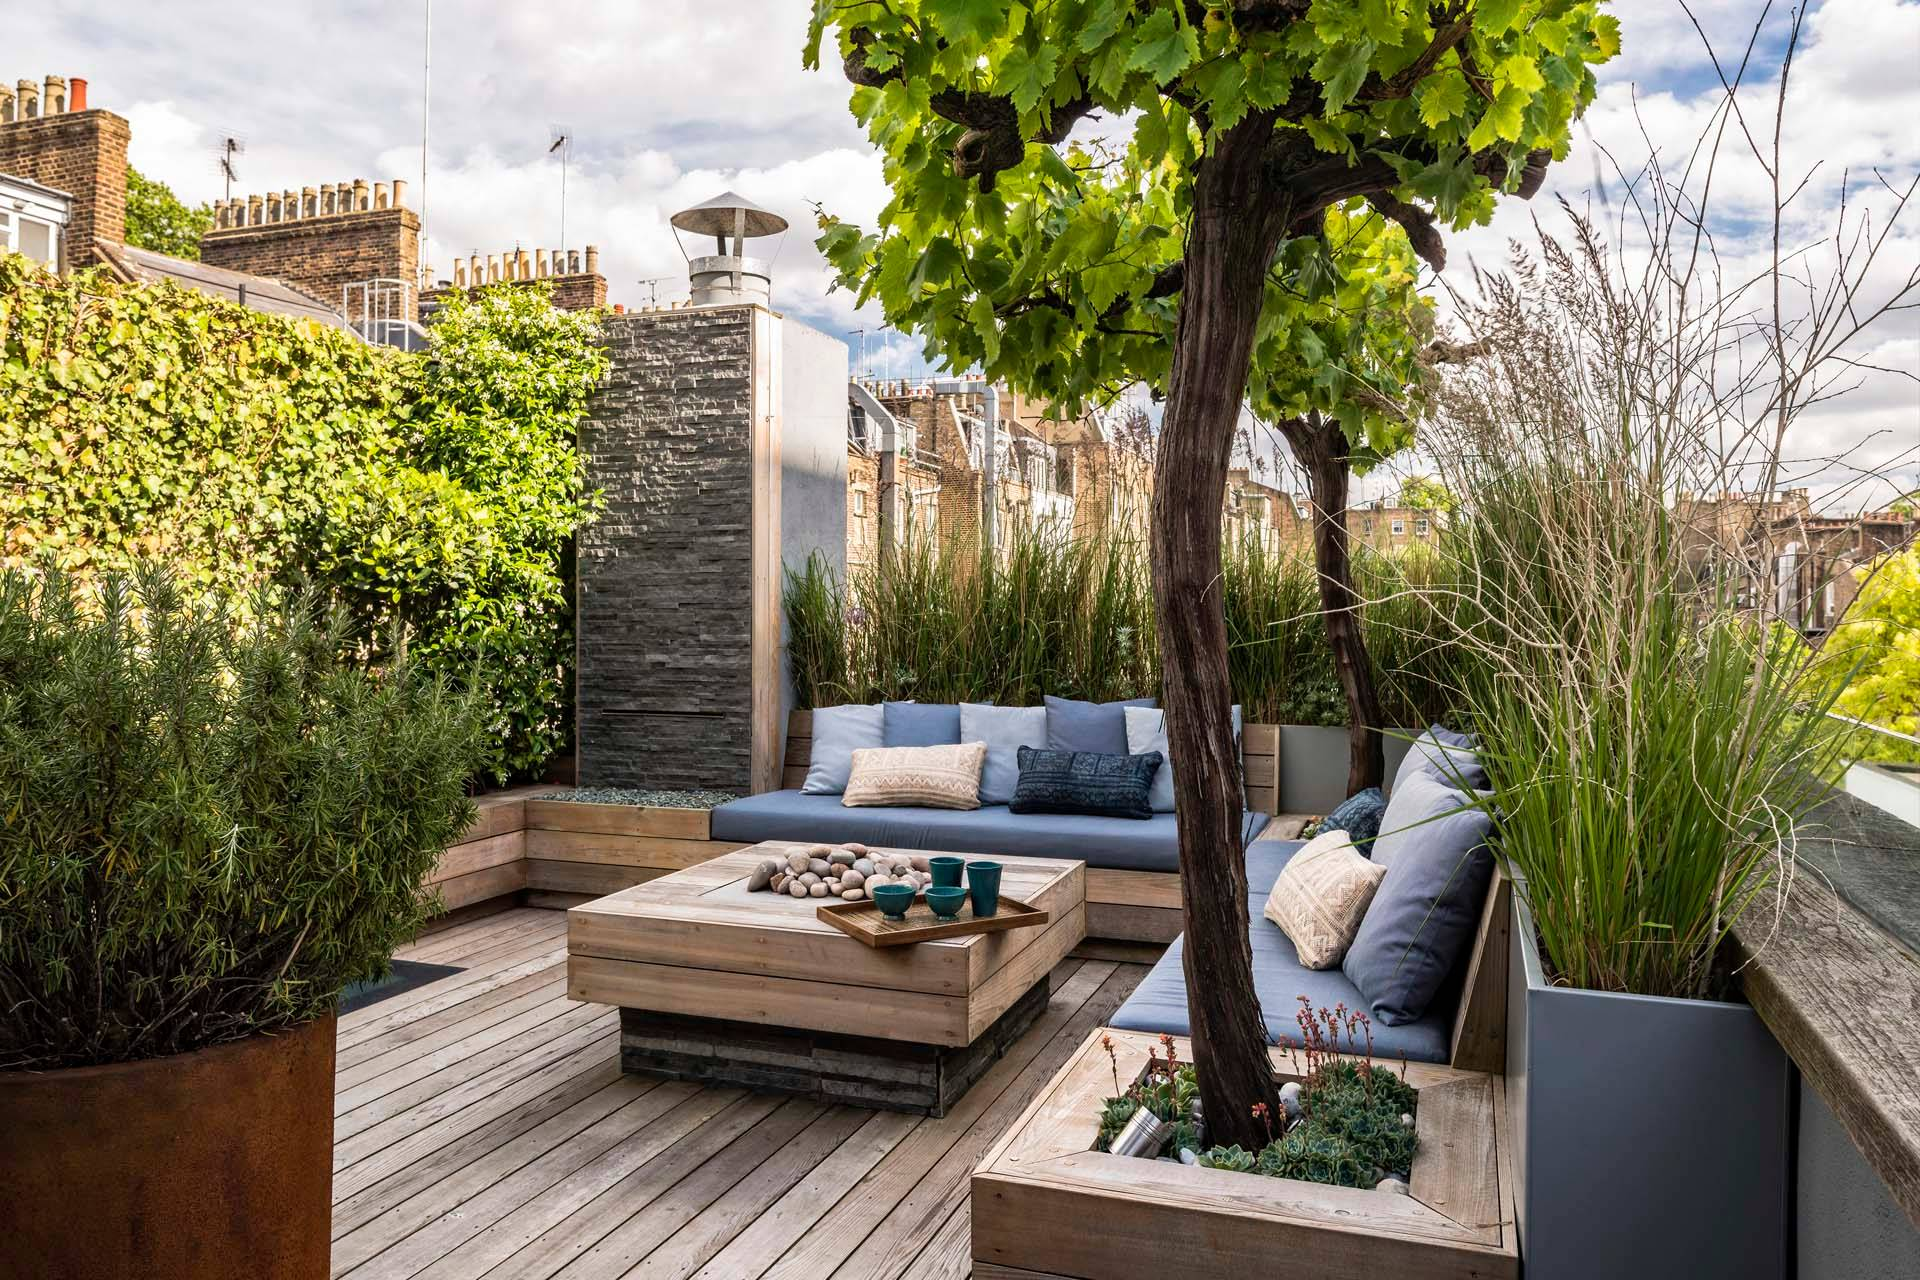 18 Beautiful Rooftop Deck Pictures Ideas November 2020 Houzz